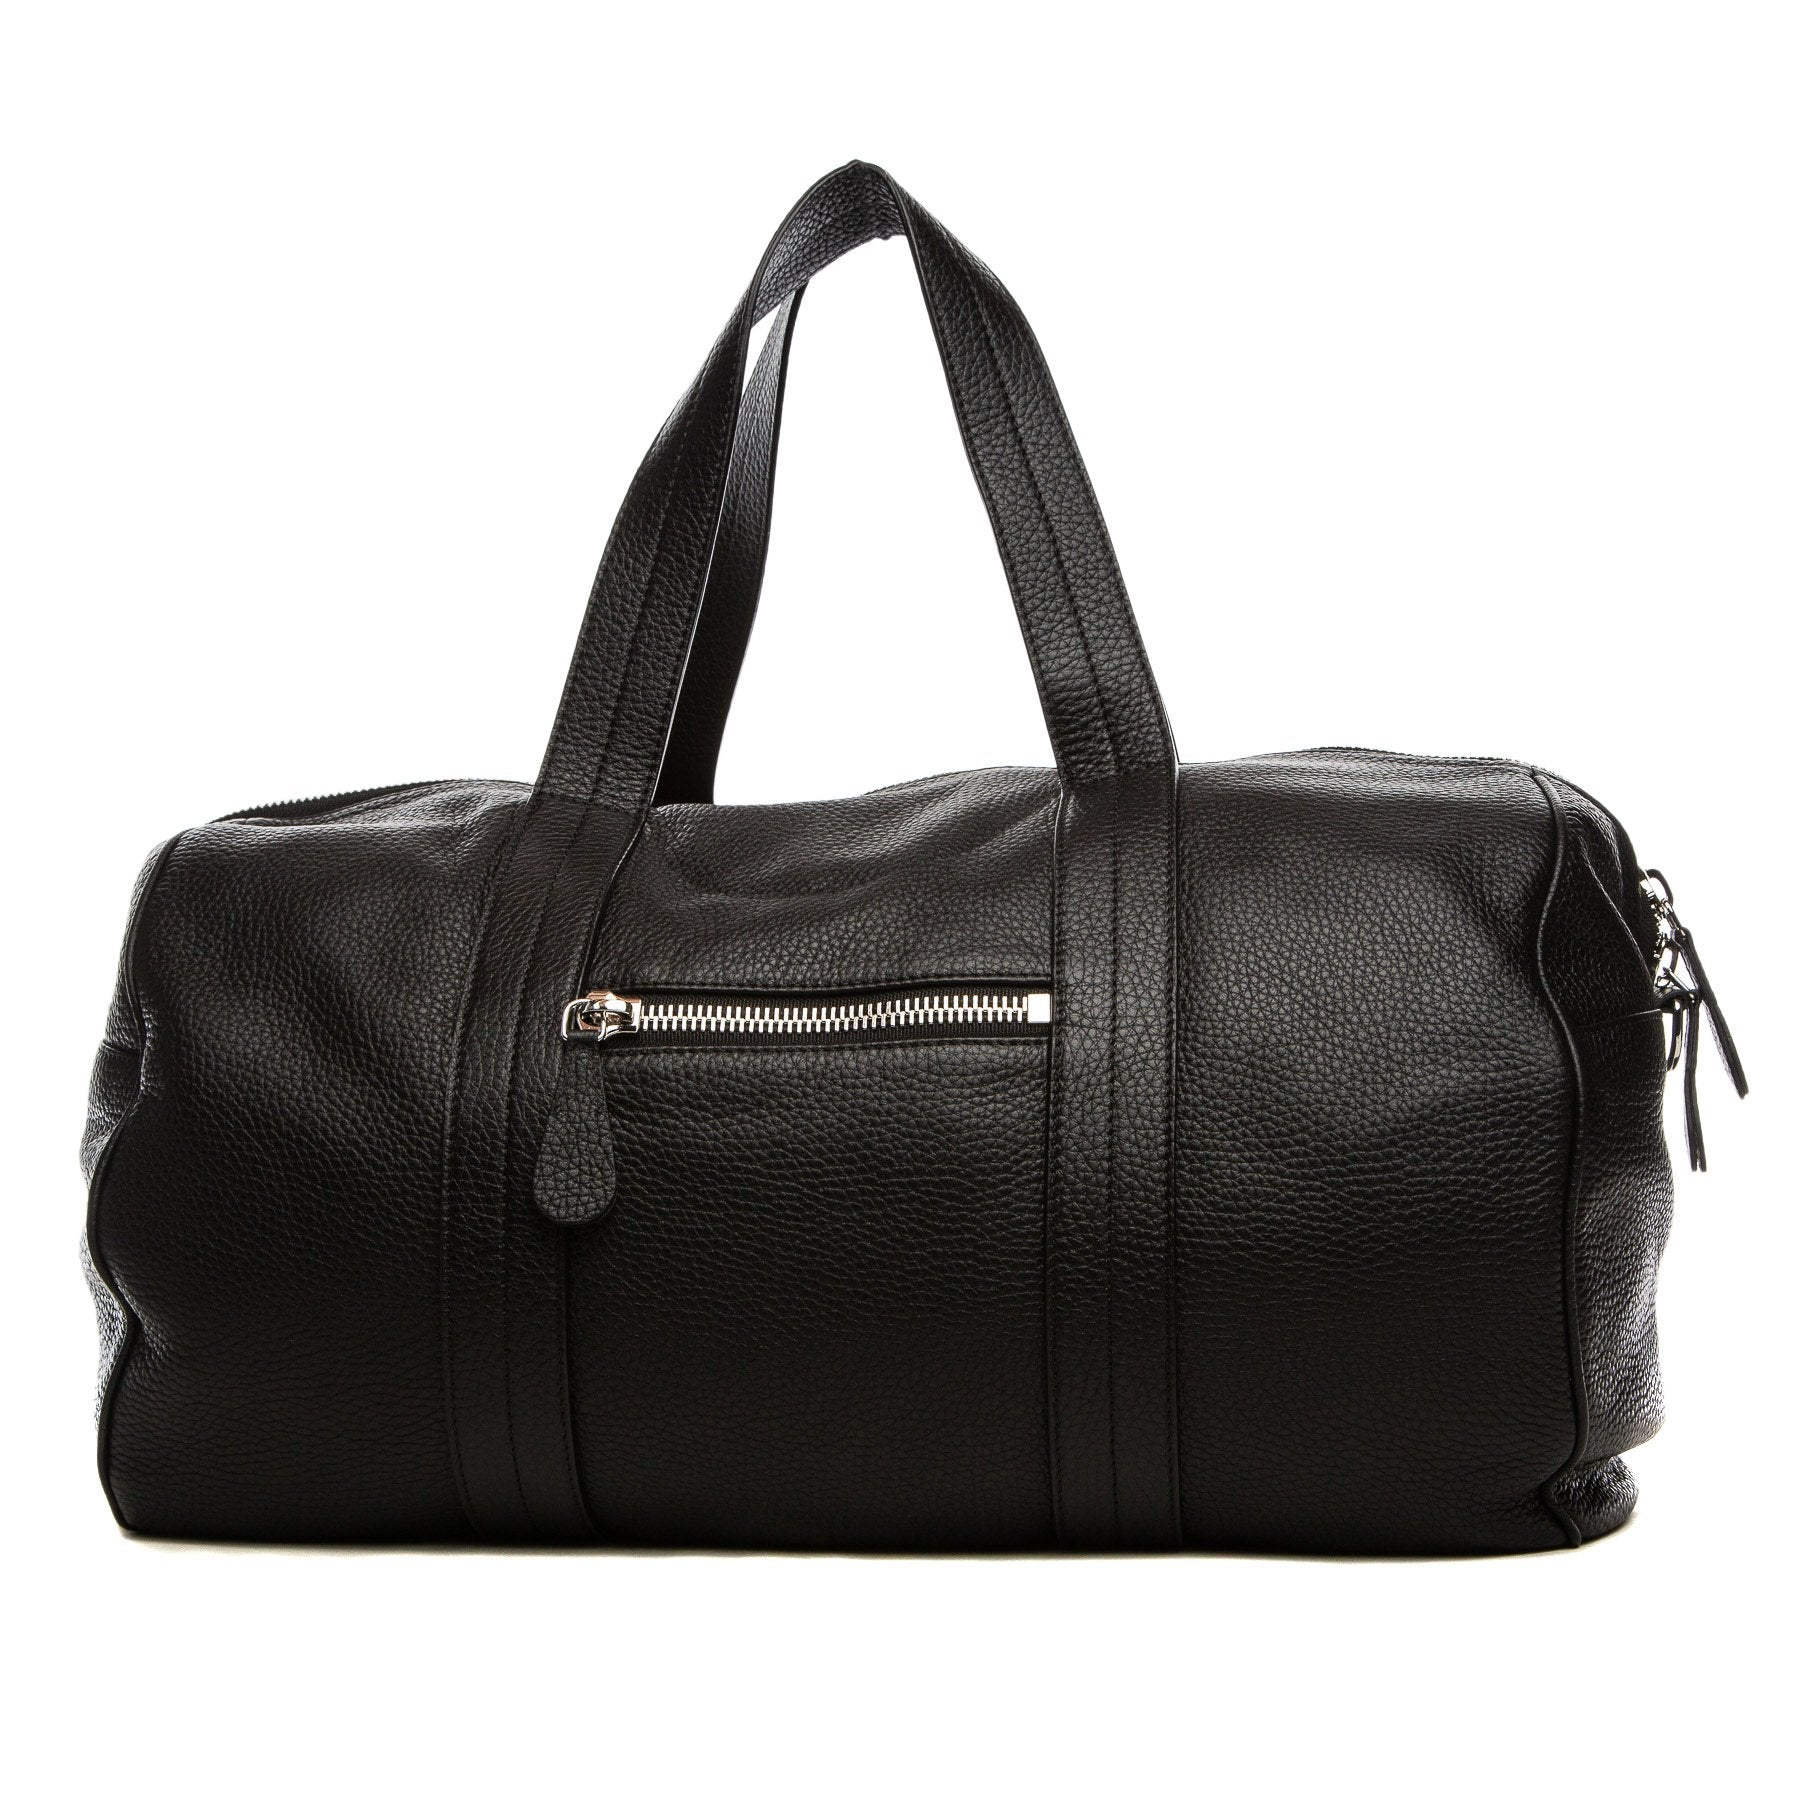 MAISON MARGIELA | TRAVELLING BAG